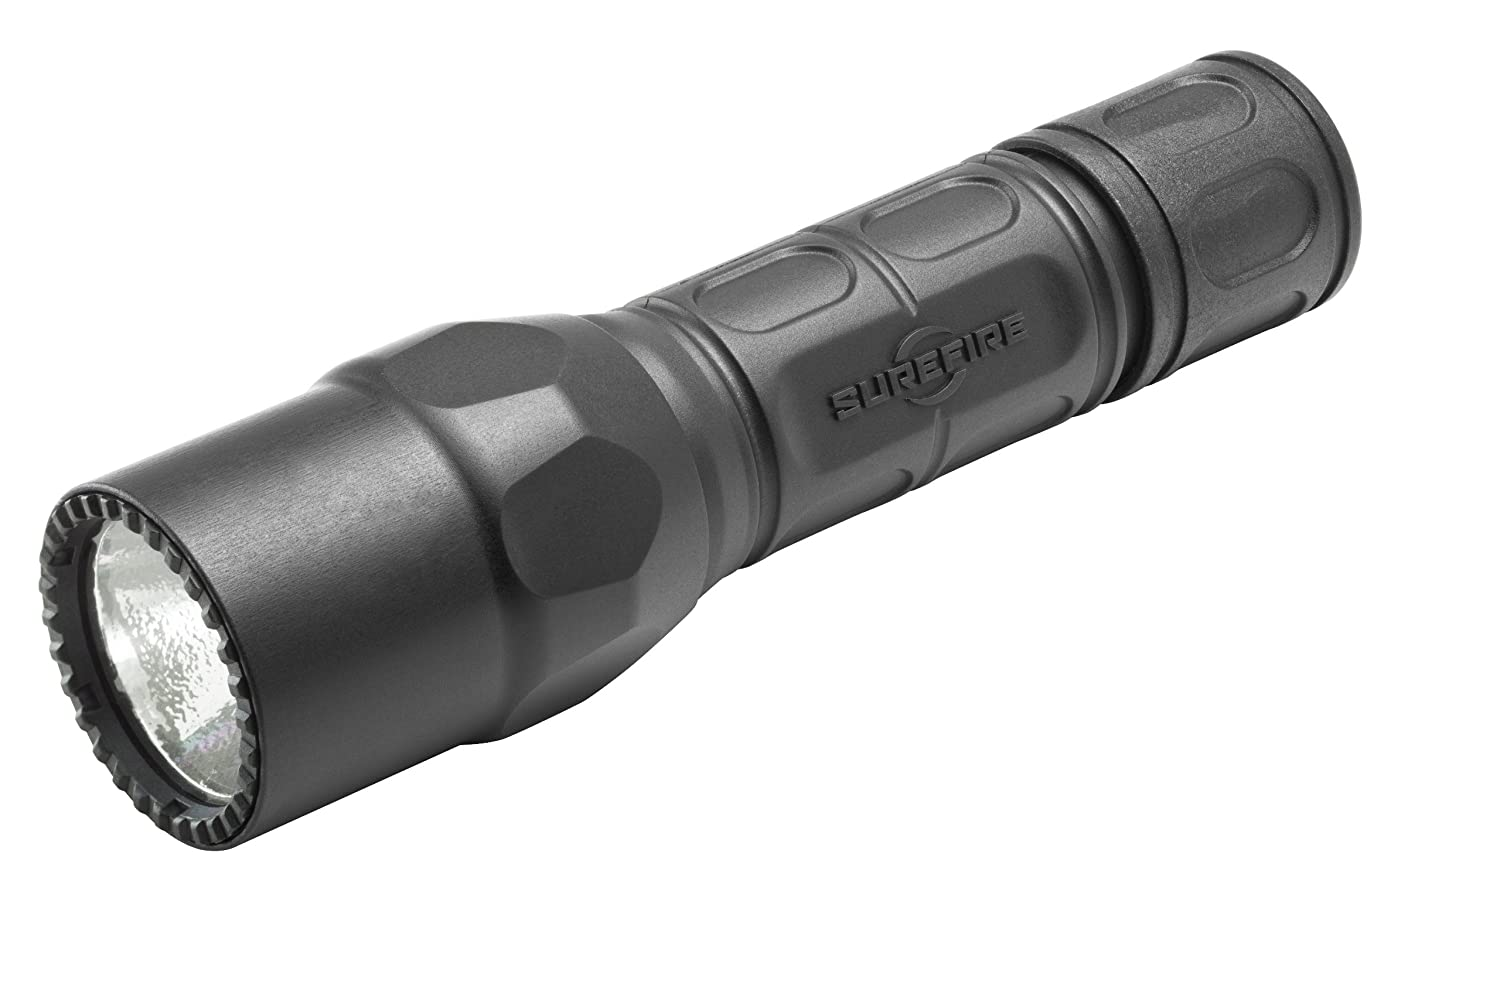 The 10 Best Tactical Flashlight